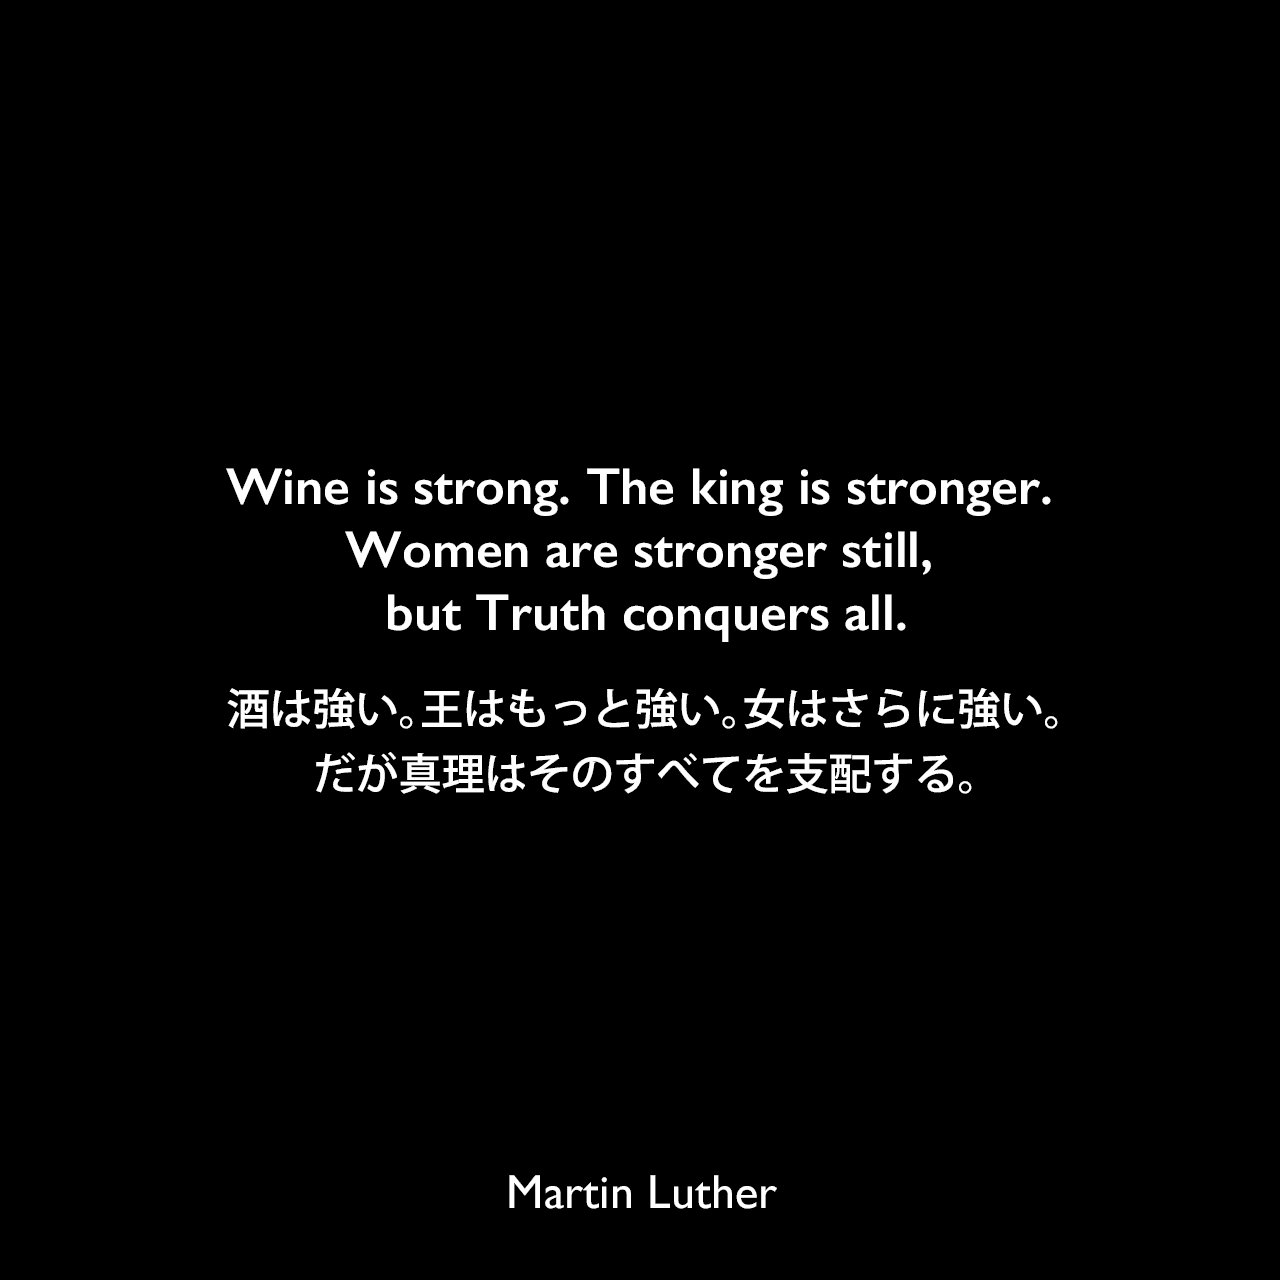 Wine is strong. The king is stronger. Women are stronger still, but Truth conquers all.酒は強い。王はもっと強い。女はさらに強い。だが真理はそのすべてを支配する。Martin Luther